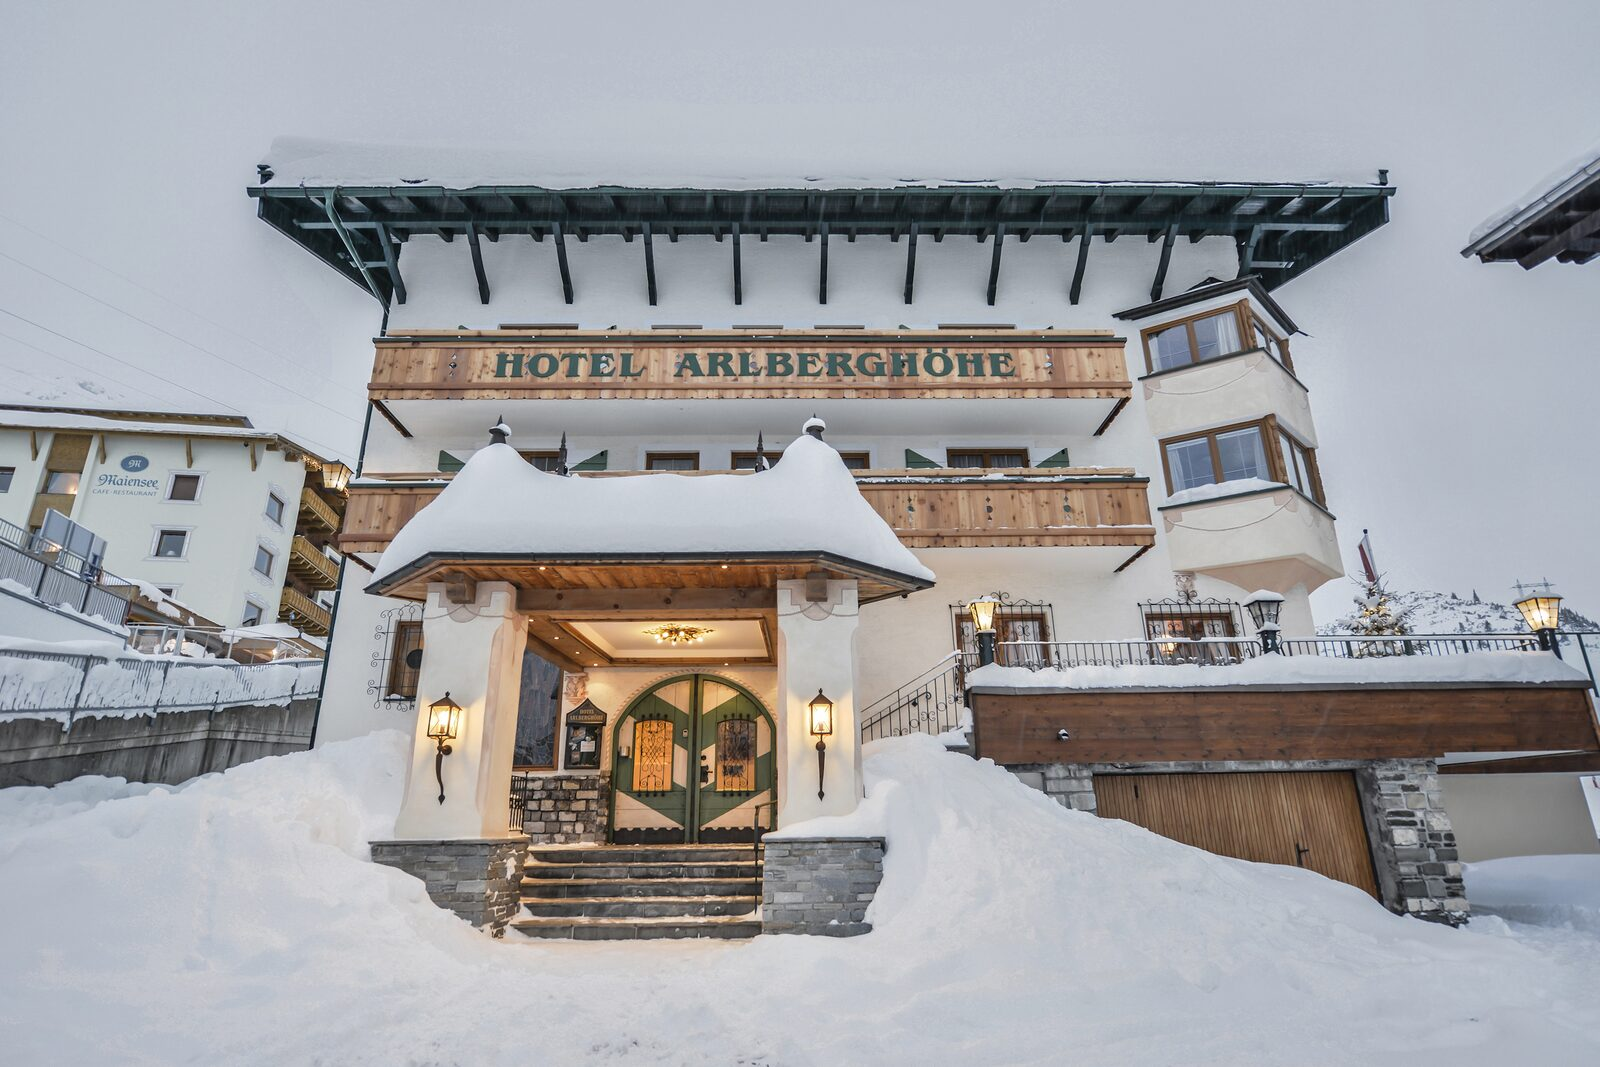 Hotel Arlberghöhe | Unlimited winter sports fun in Tyrol